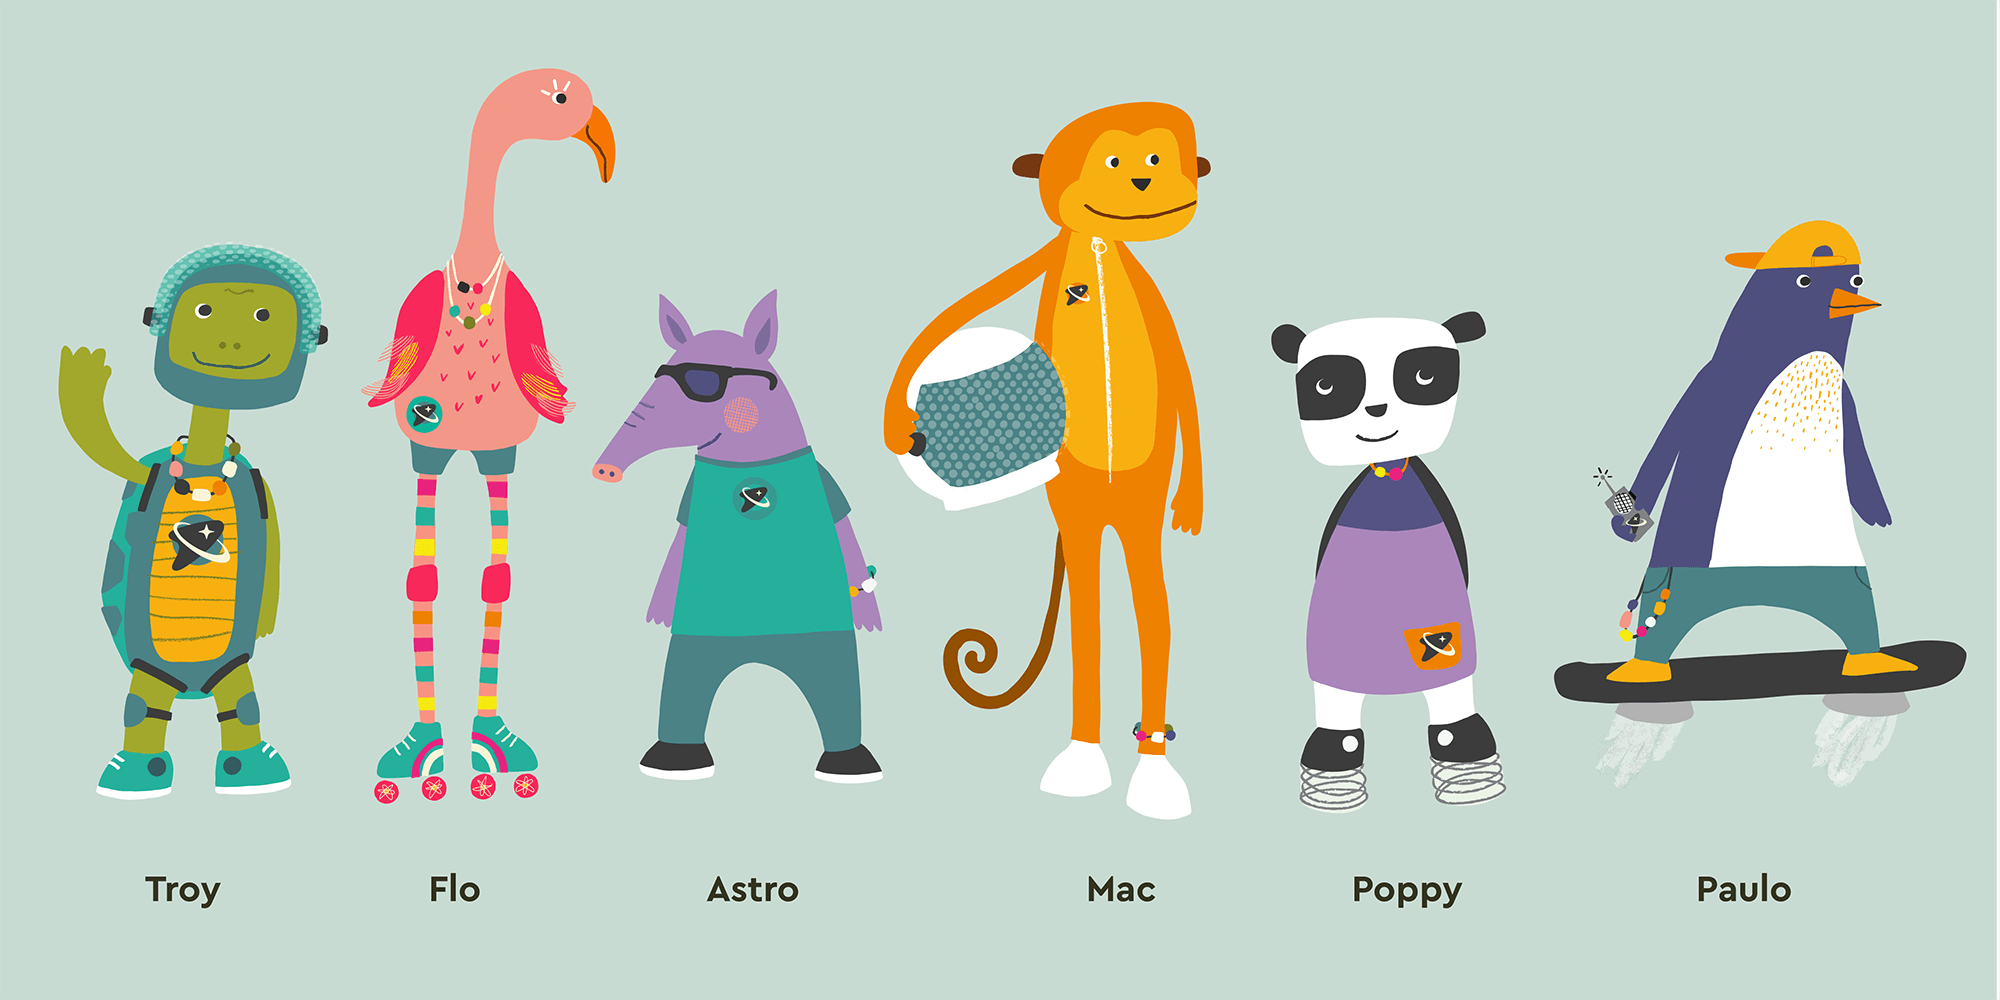 The full character line up, with names